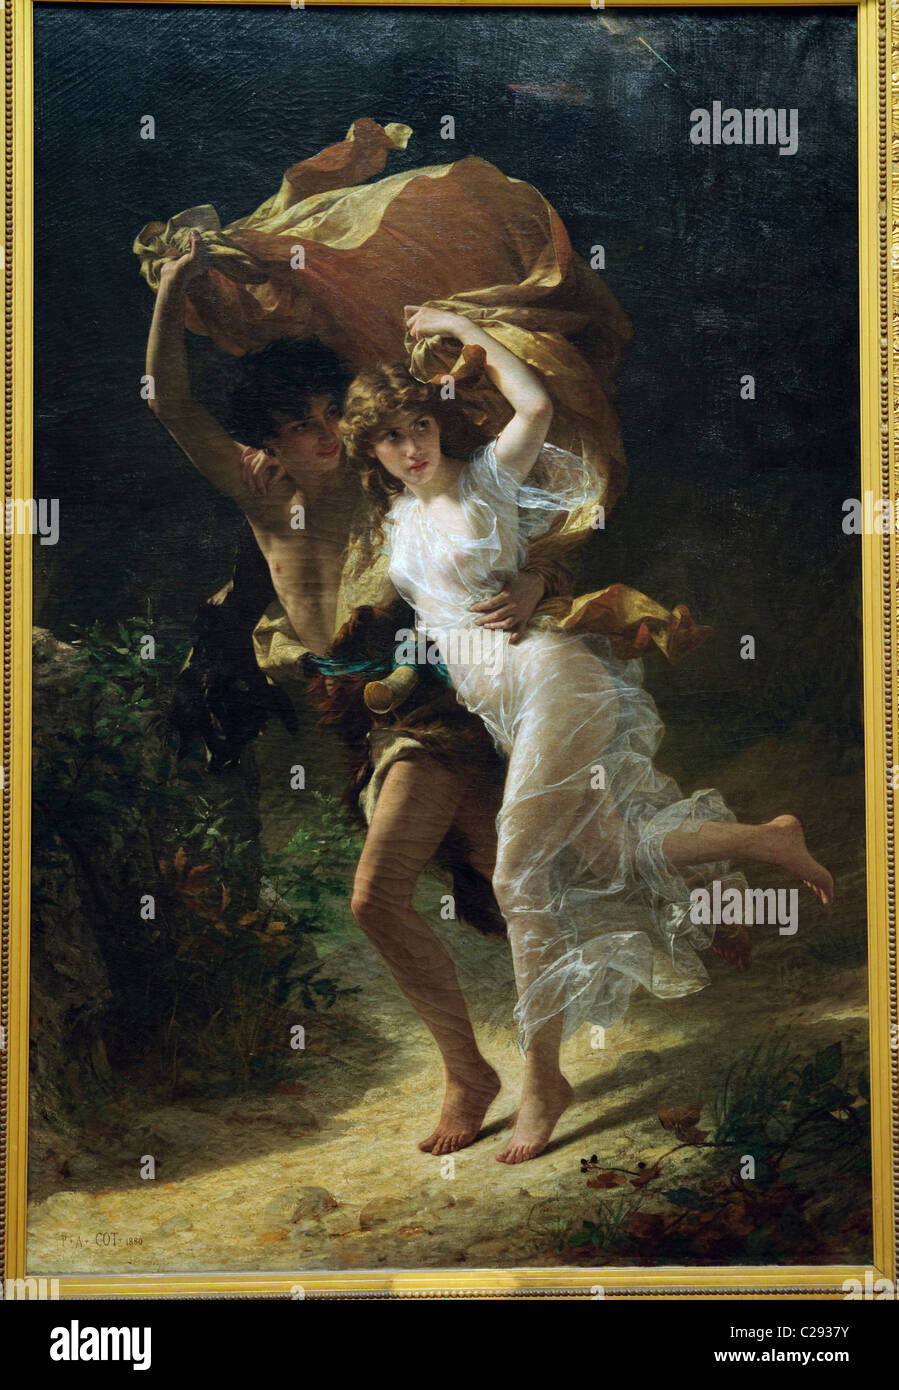 The Storm,1880, by Pierre-Auguste Cot - Stock Image